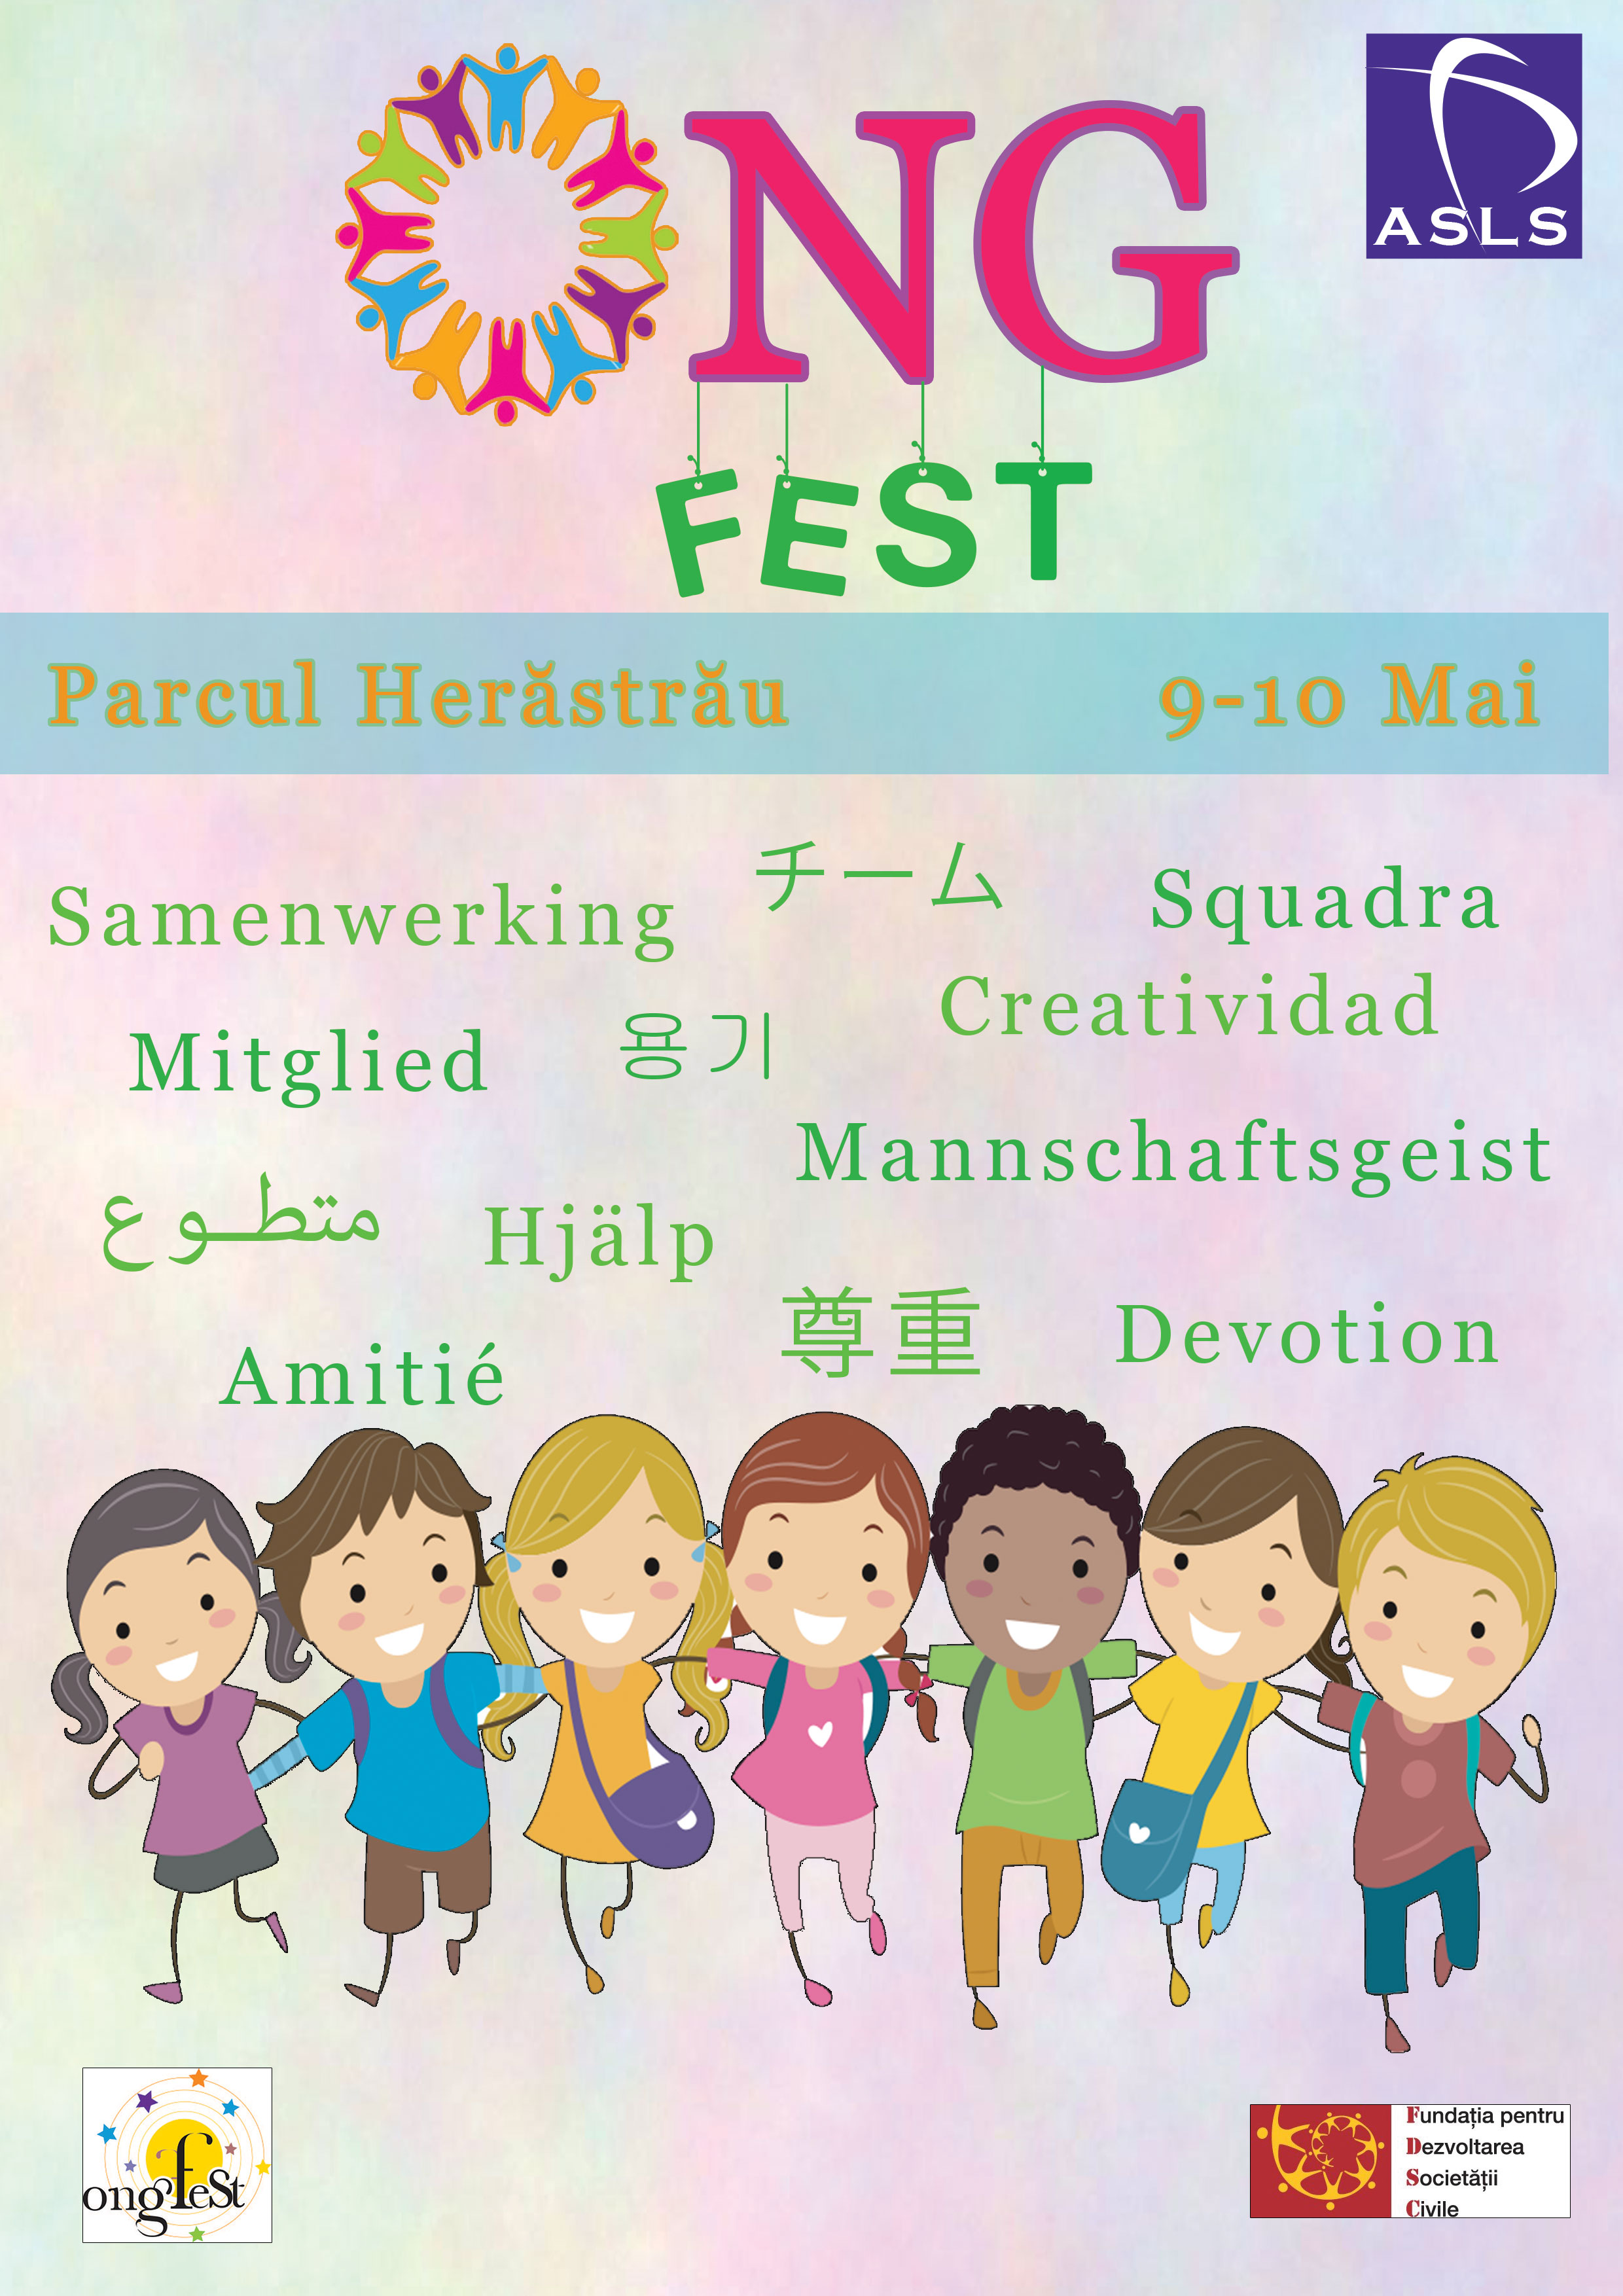 ongfest4